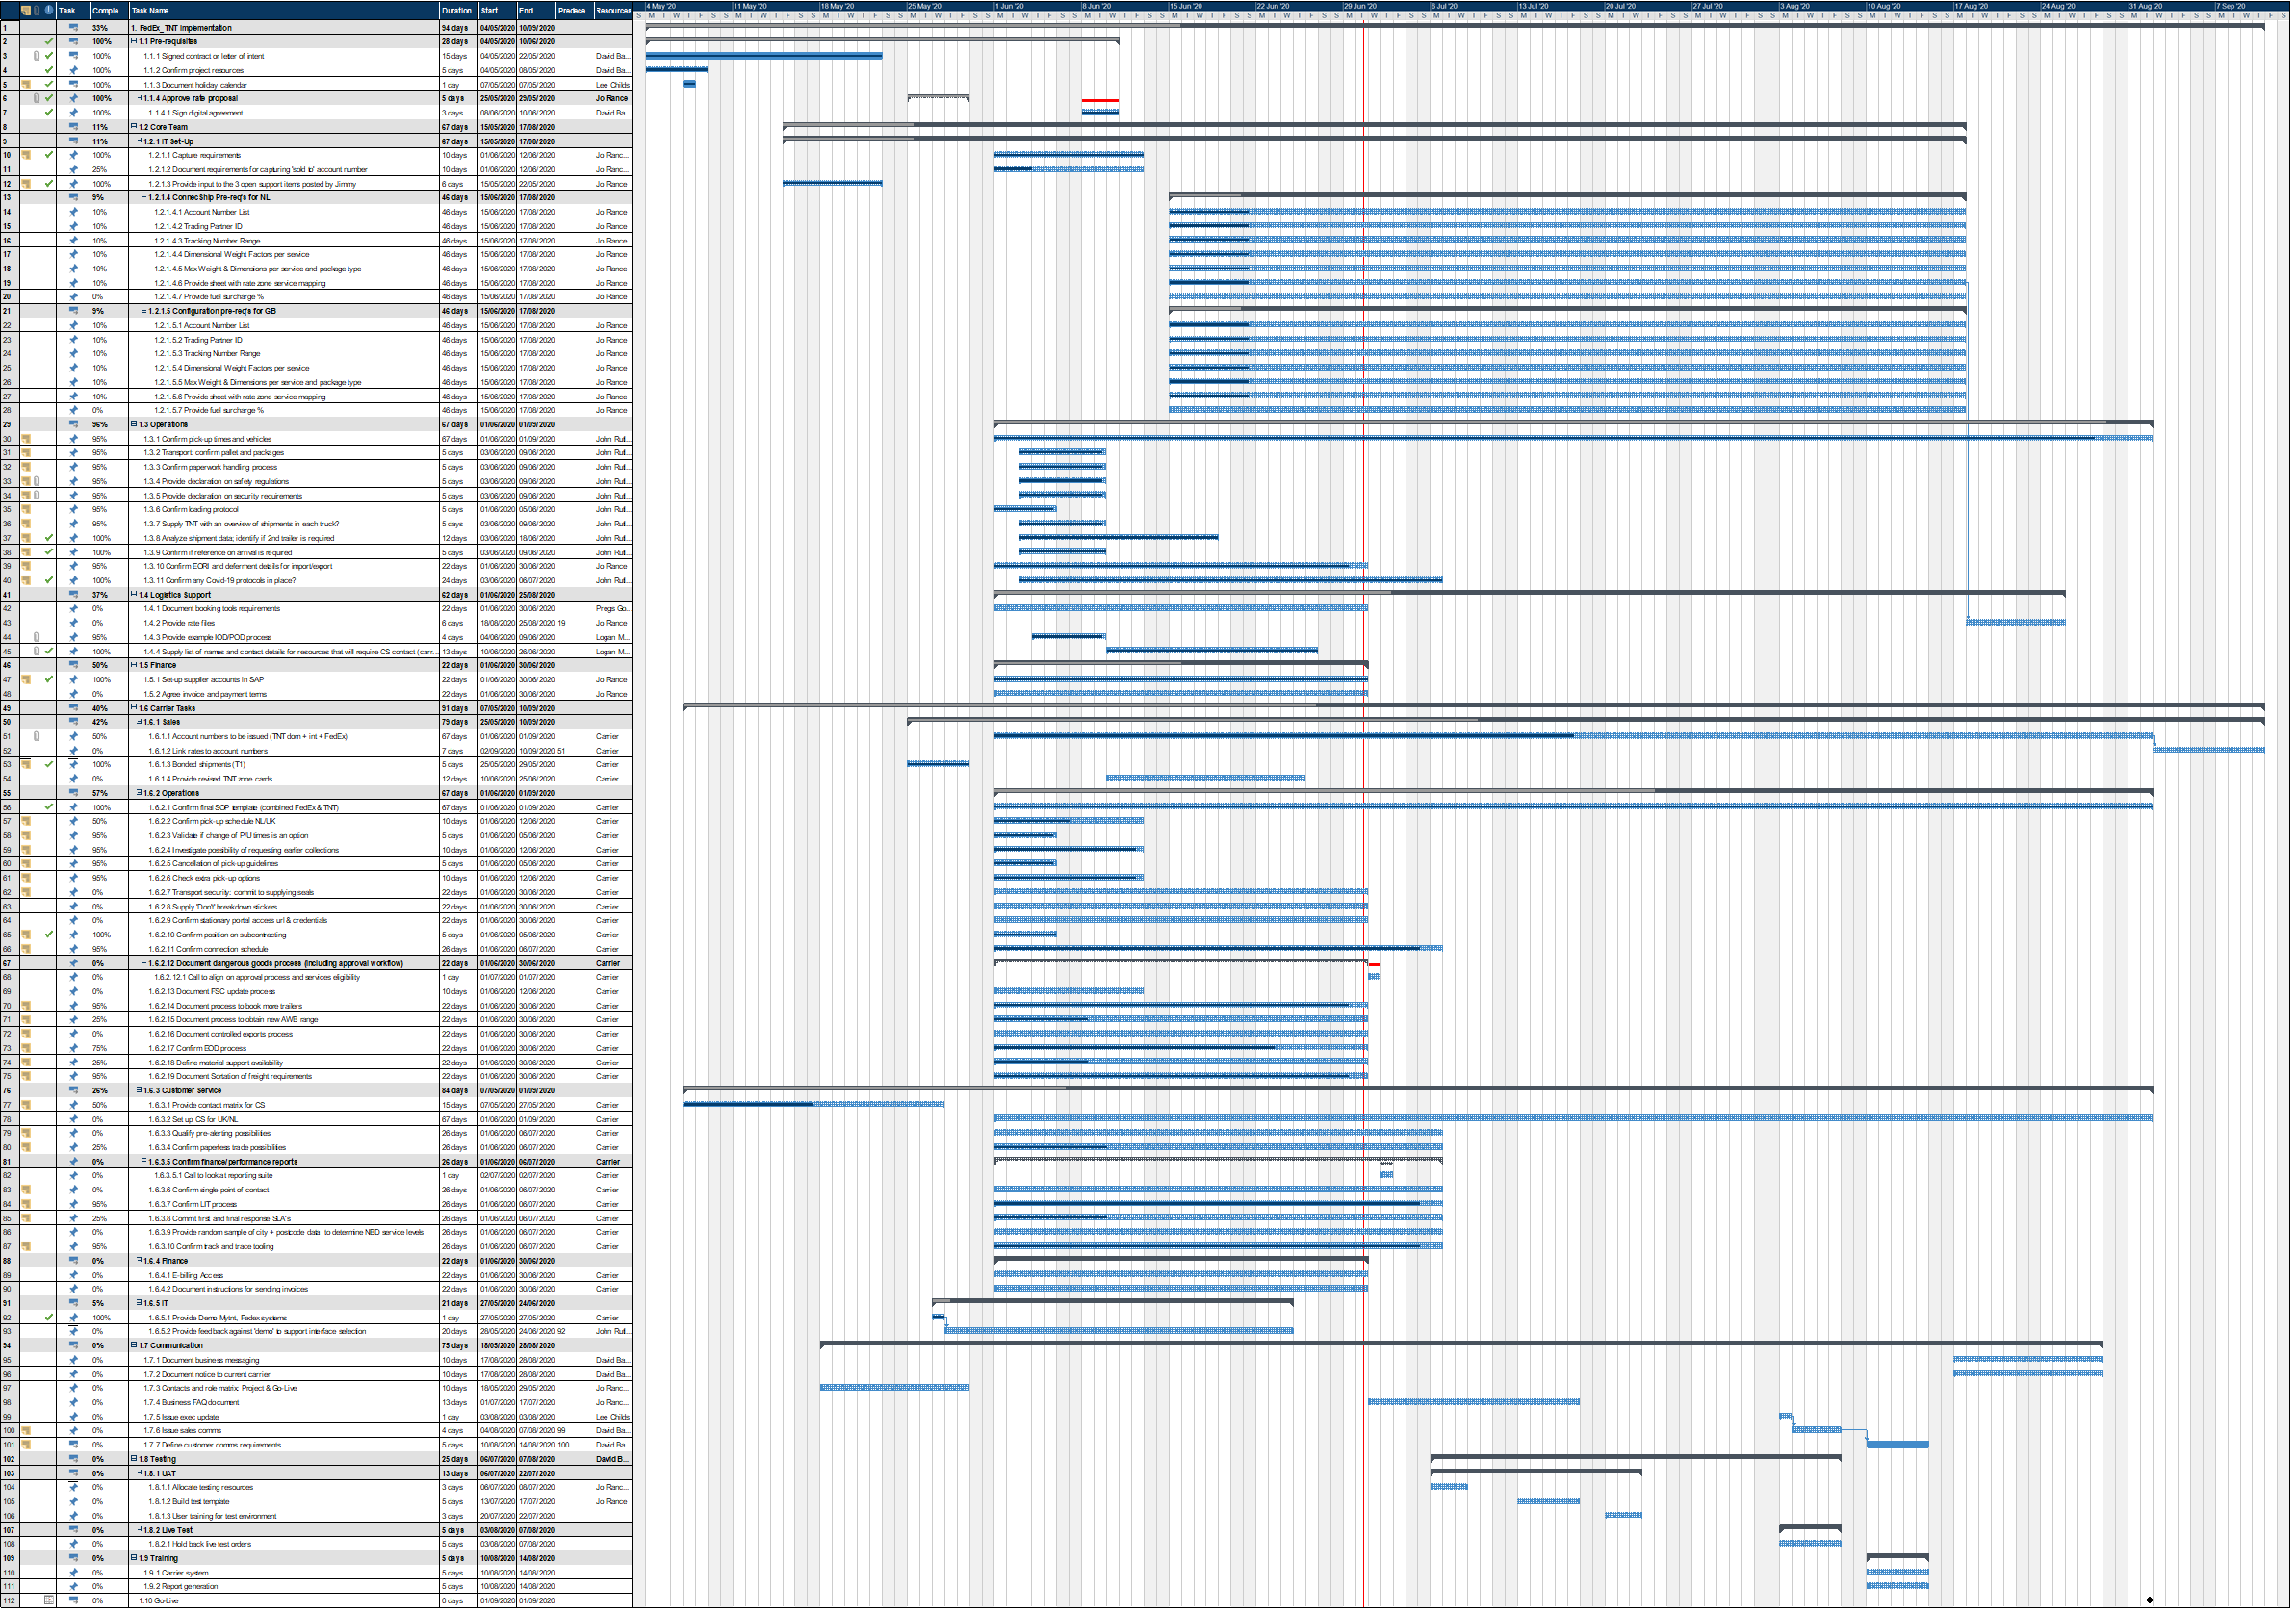 Fedex_TNT Implementation Gantt Chart